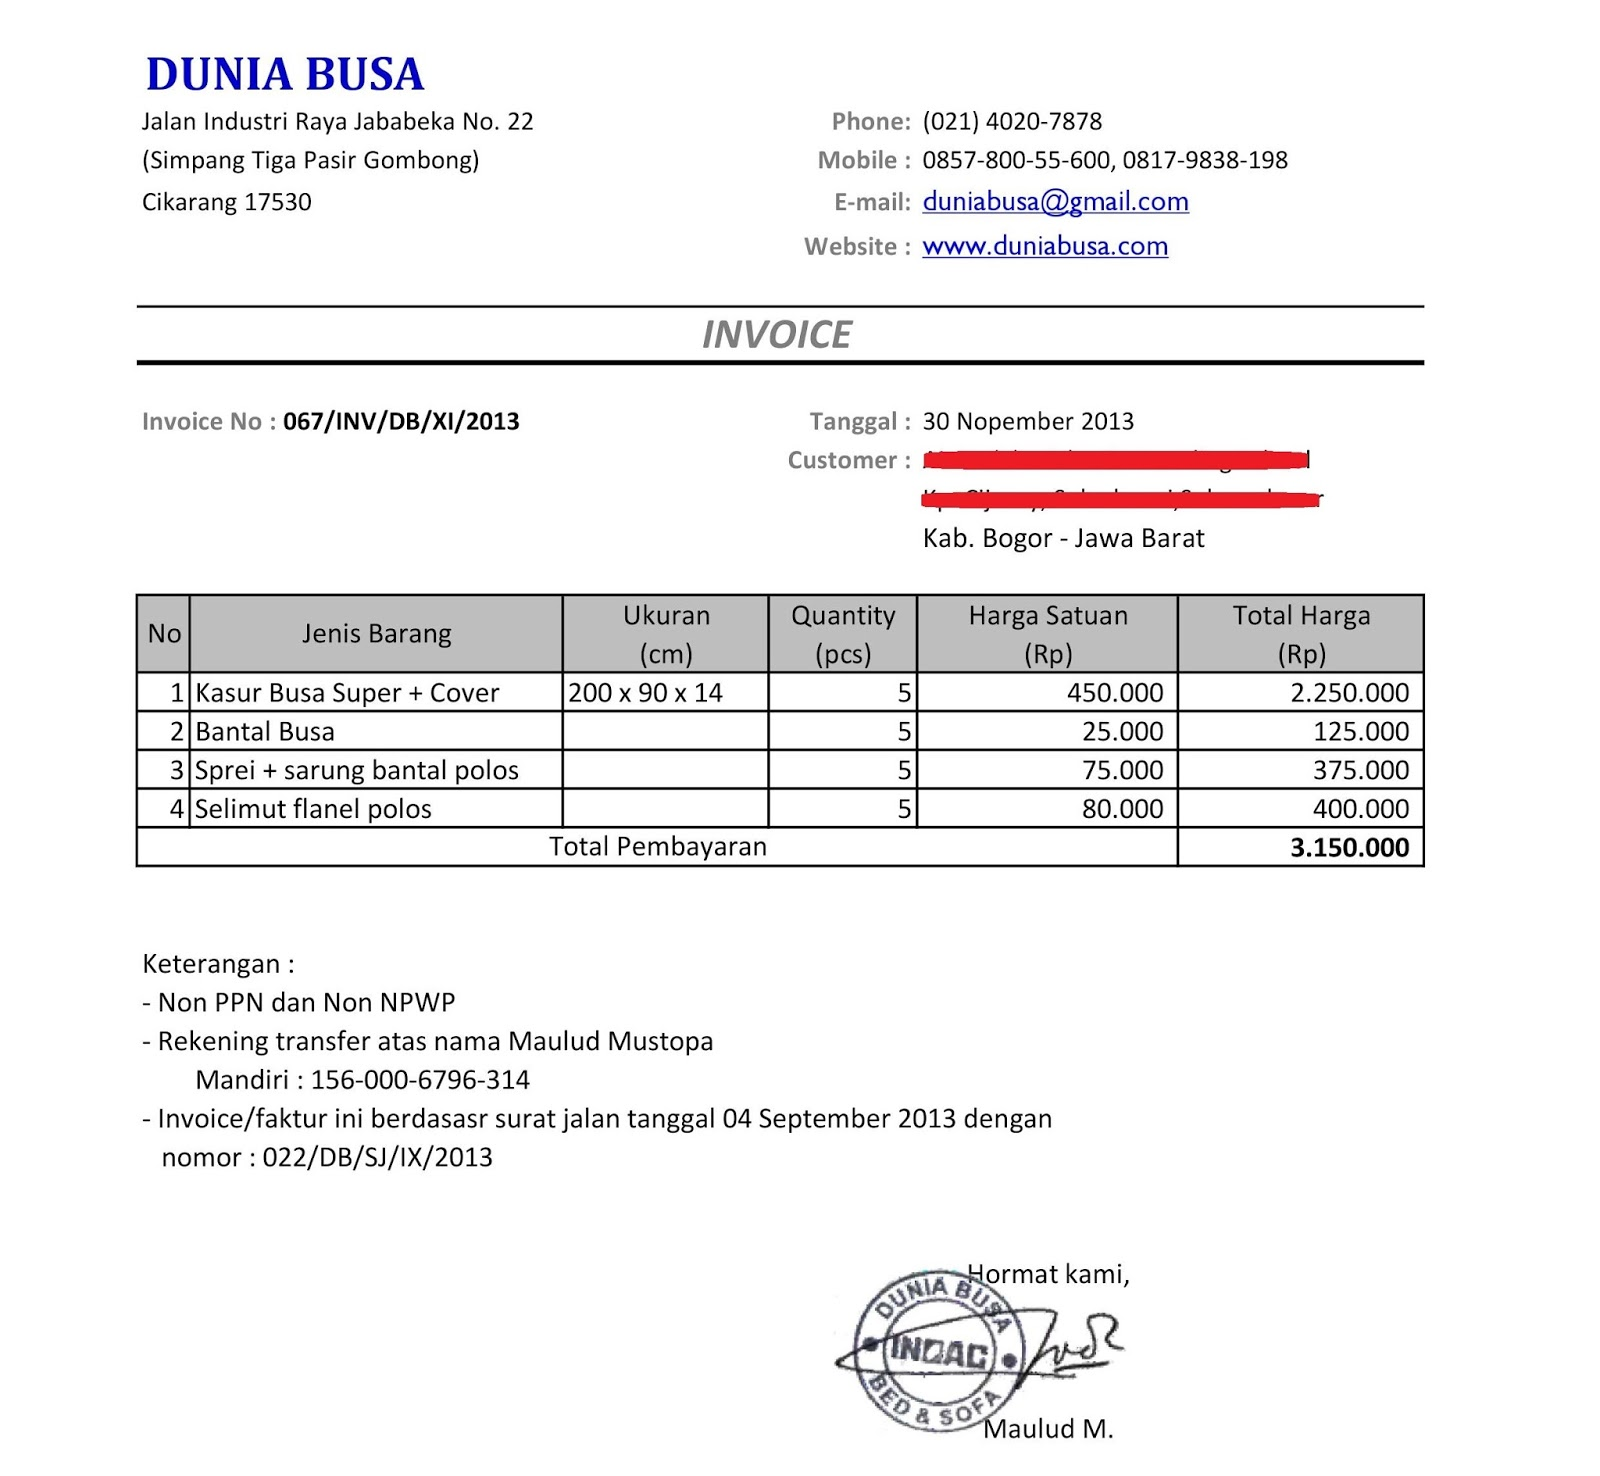 Shopdesignsus  Unique Free Invoice Online  Create Invoice Online  Invoice Template  With Hot Contoh Format Invoice Atau Surat Tagihan  Brankas Arsip  Free Invoice Online With Beautiful Purchase Invoice Template Also Quickbooks Online Invoicing In Addition Motorcycle Invoice Price And Online Invoice System As Well As How To Number Invoices Additionally Invoice Cover Letter From Sklepco With Shopdesignsus  Hot Free Invoice Online  Create Invoice Online  Invoice Template  With Beautiful Contoh Format Invoice Atau Surat Tagihan  Brankas Arsip  Free Invoice Online And Unique Purchase Invoice Template Also Quickbooks Online Invoicing In Addition Motorcycle Invoice Price From Sklepco